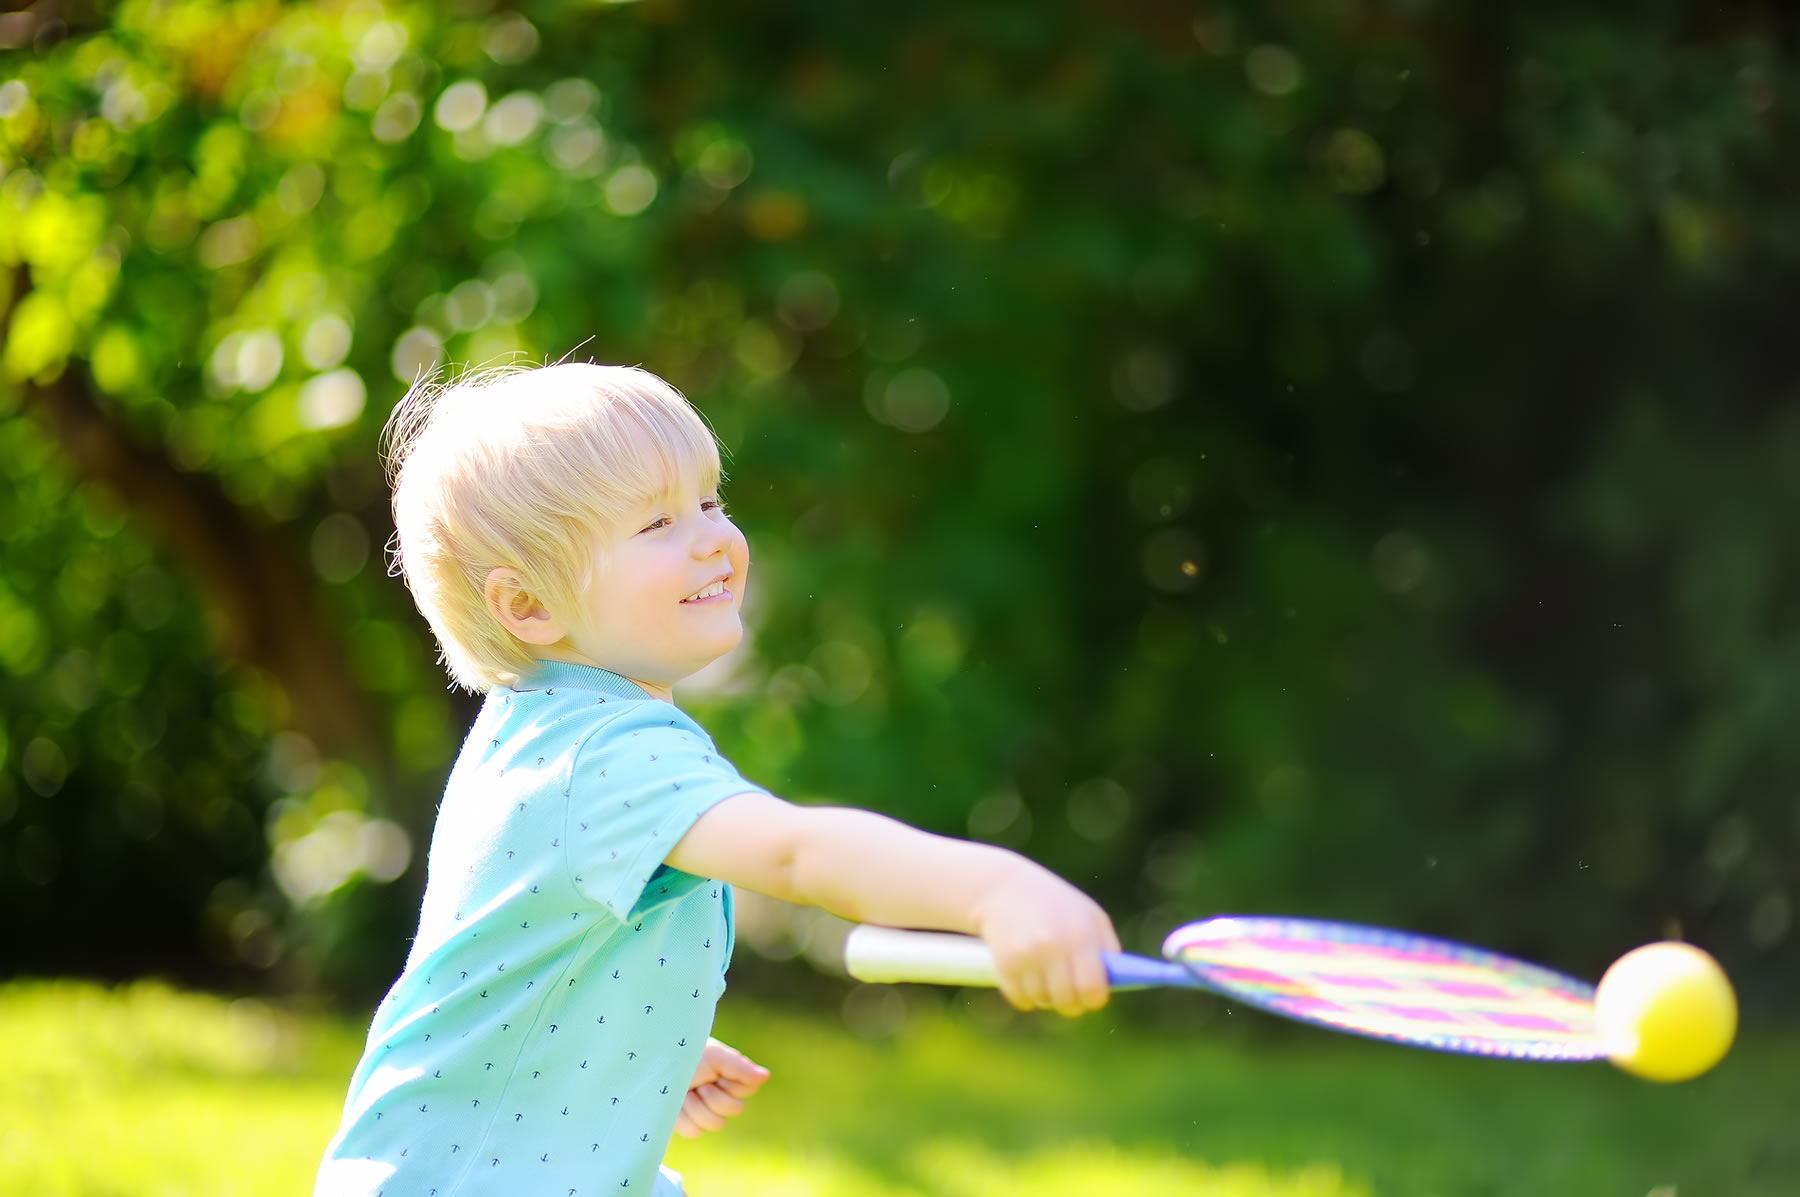 Free trial - Tennis lessons in Weybridge Cobham and Leatherhead for children and adults